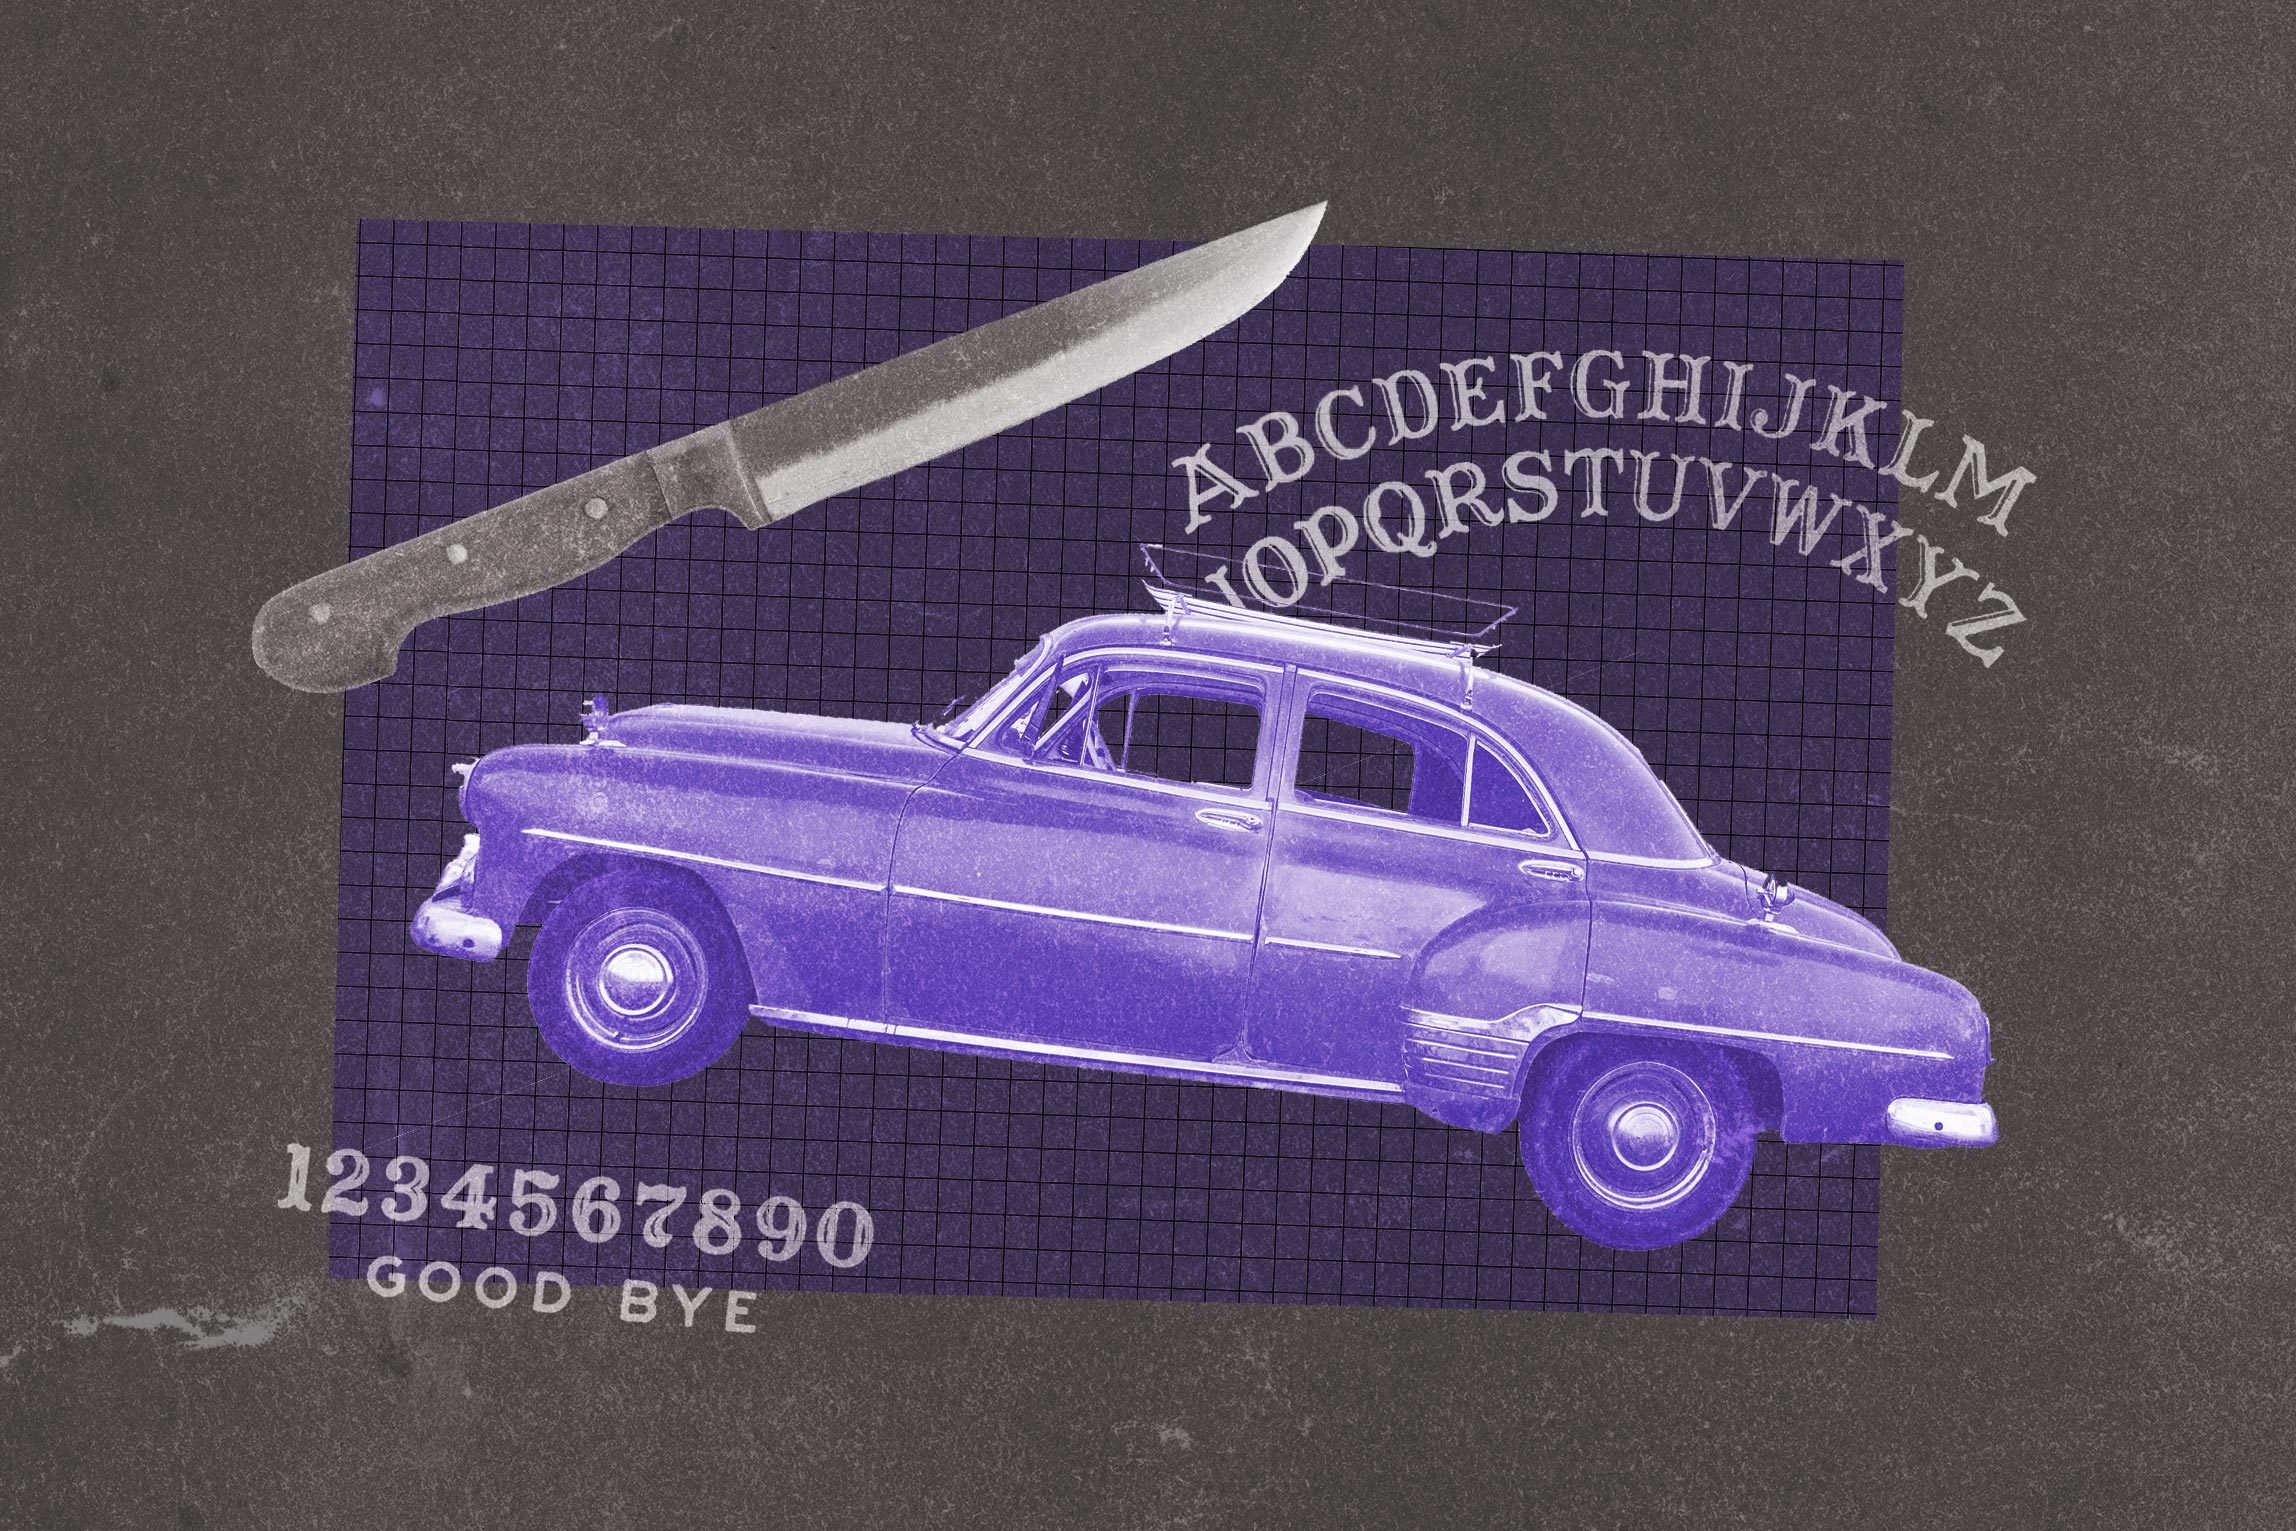 Collage of old-fashioned car, knife, and oujia board lettering.